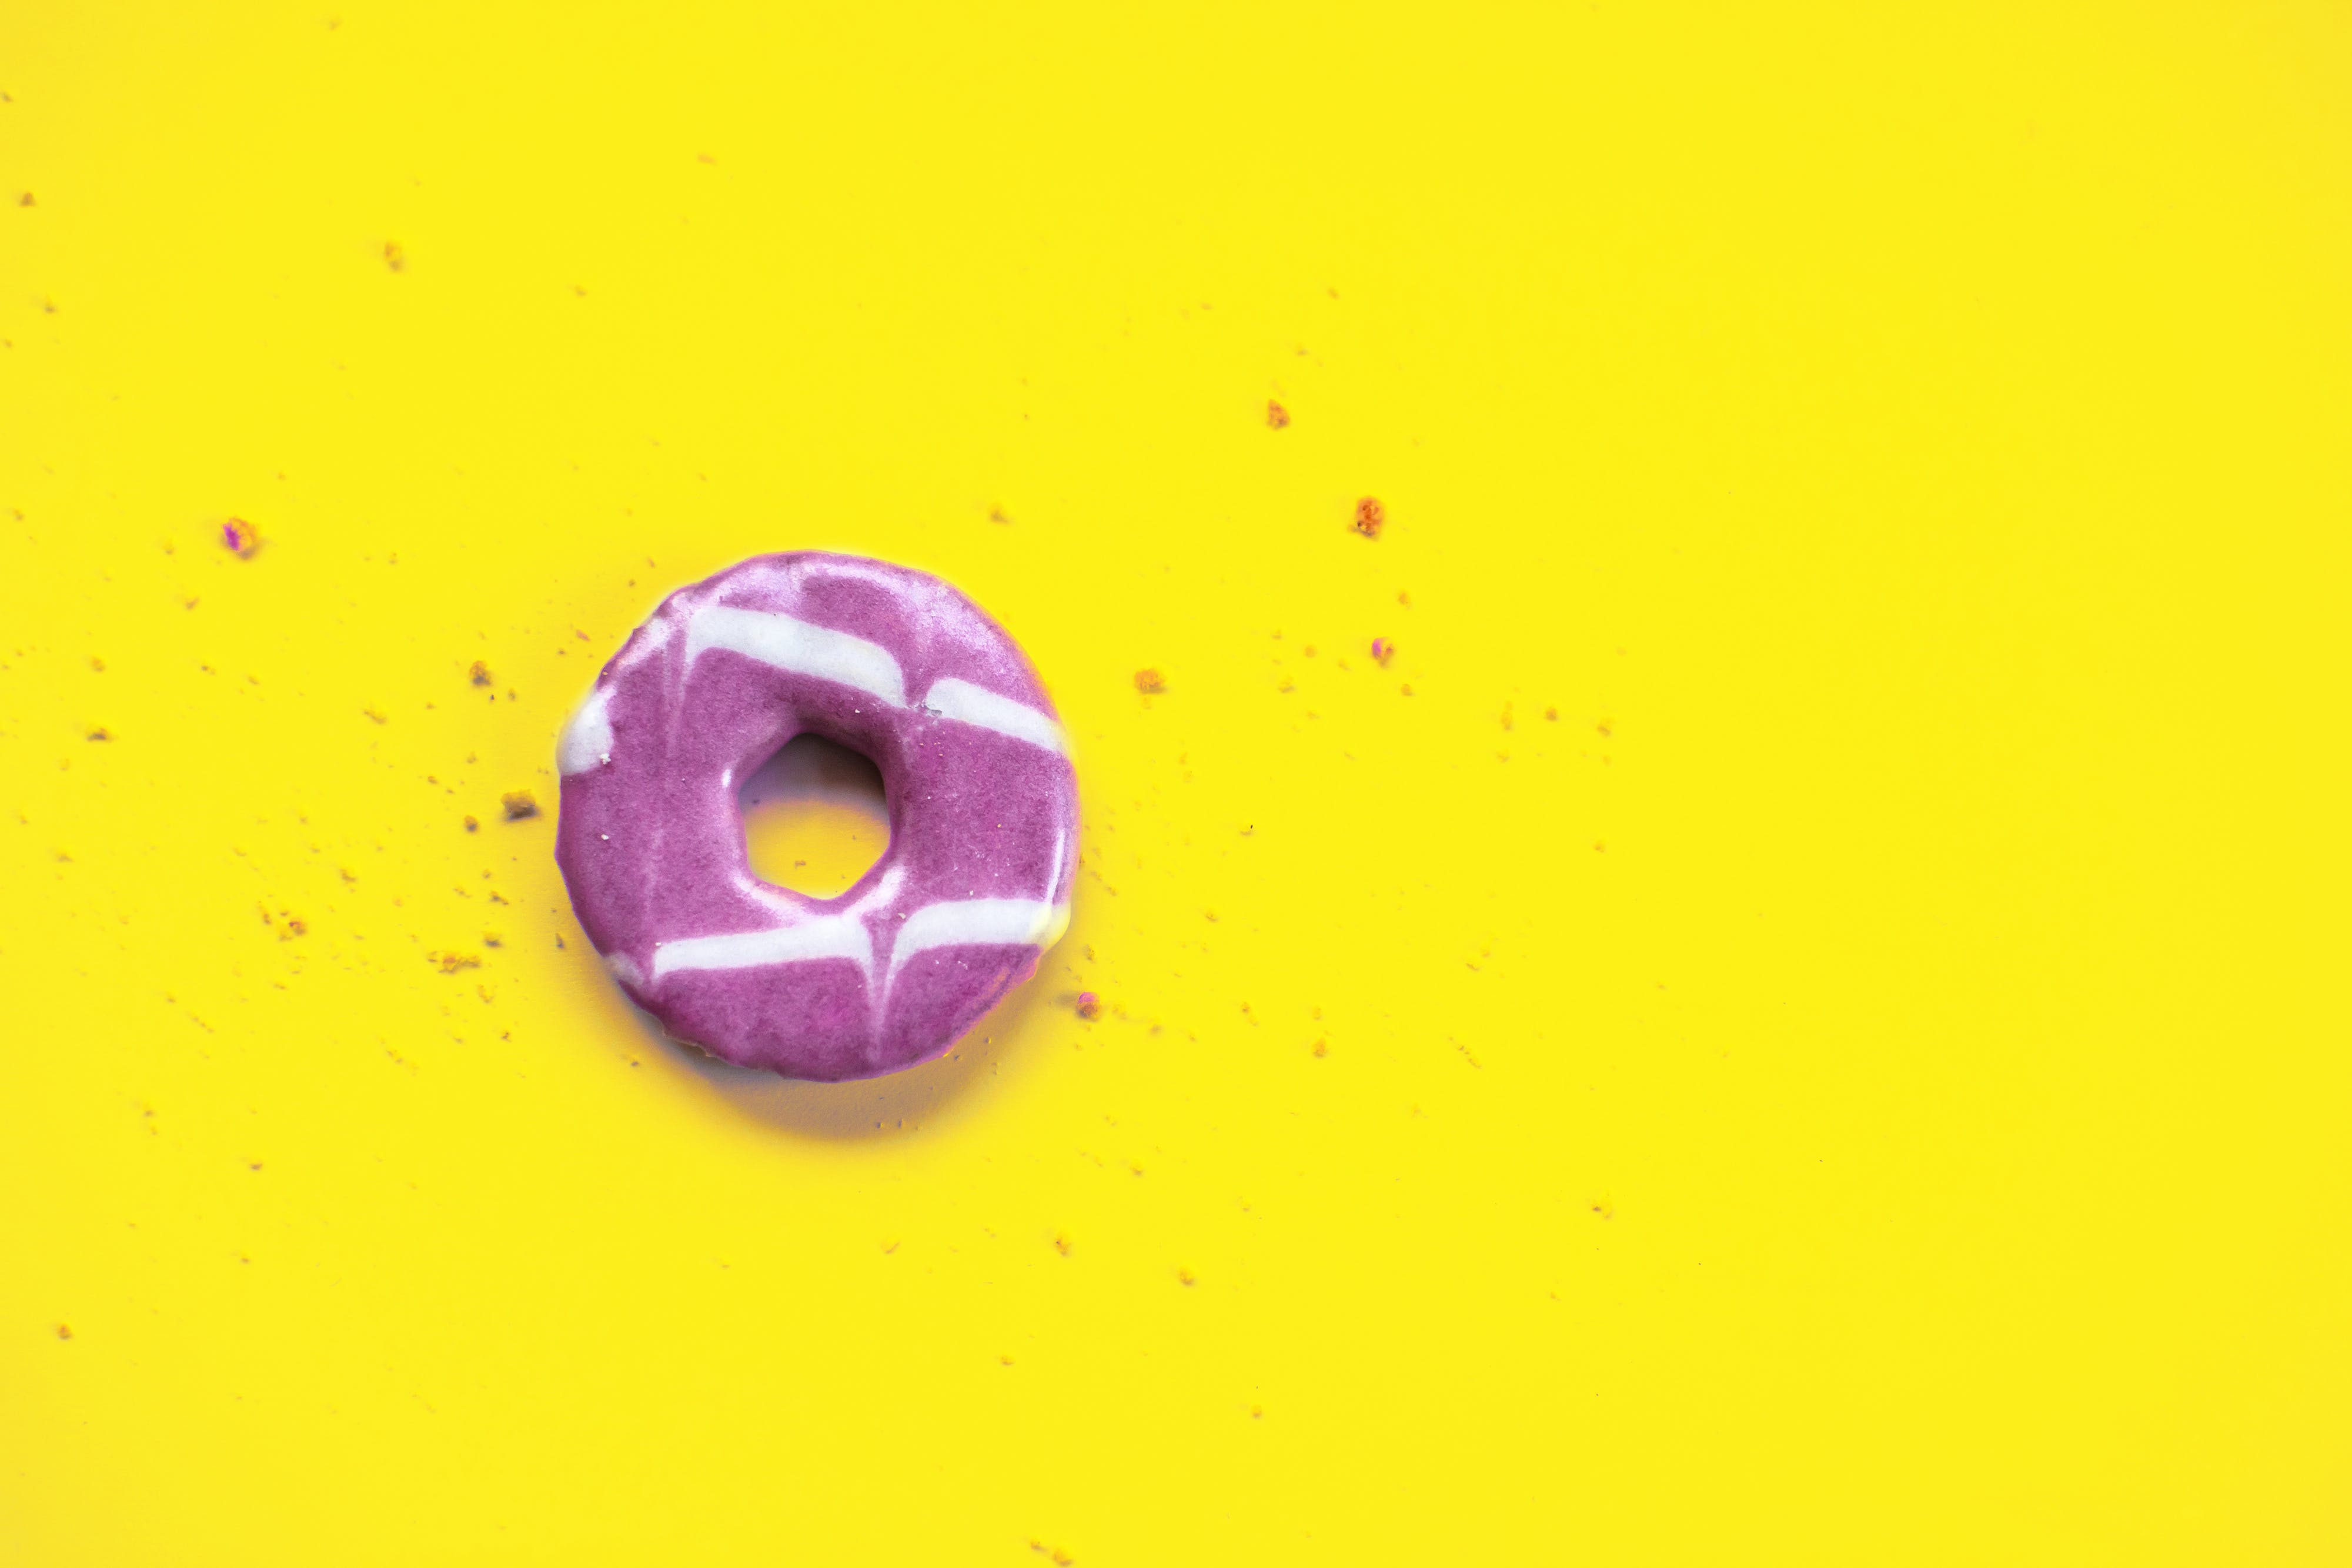 Round Purple and White Ring Candy